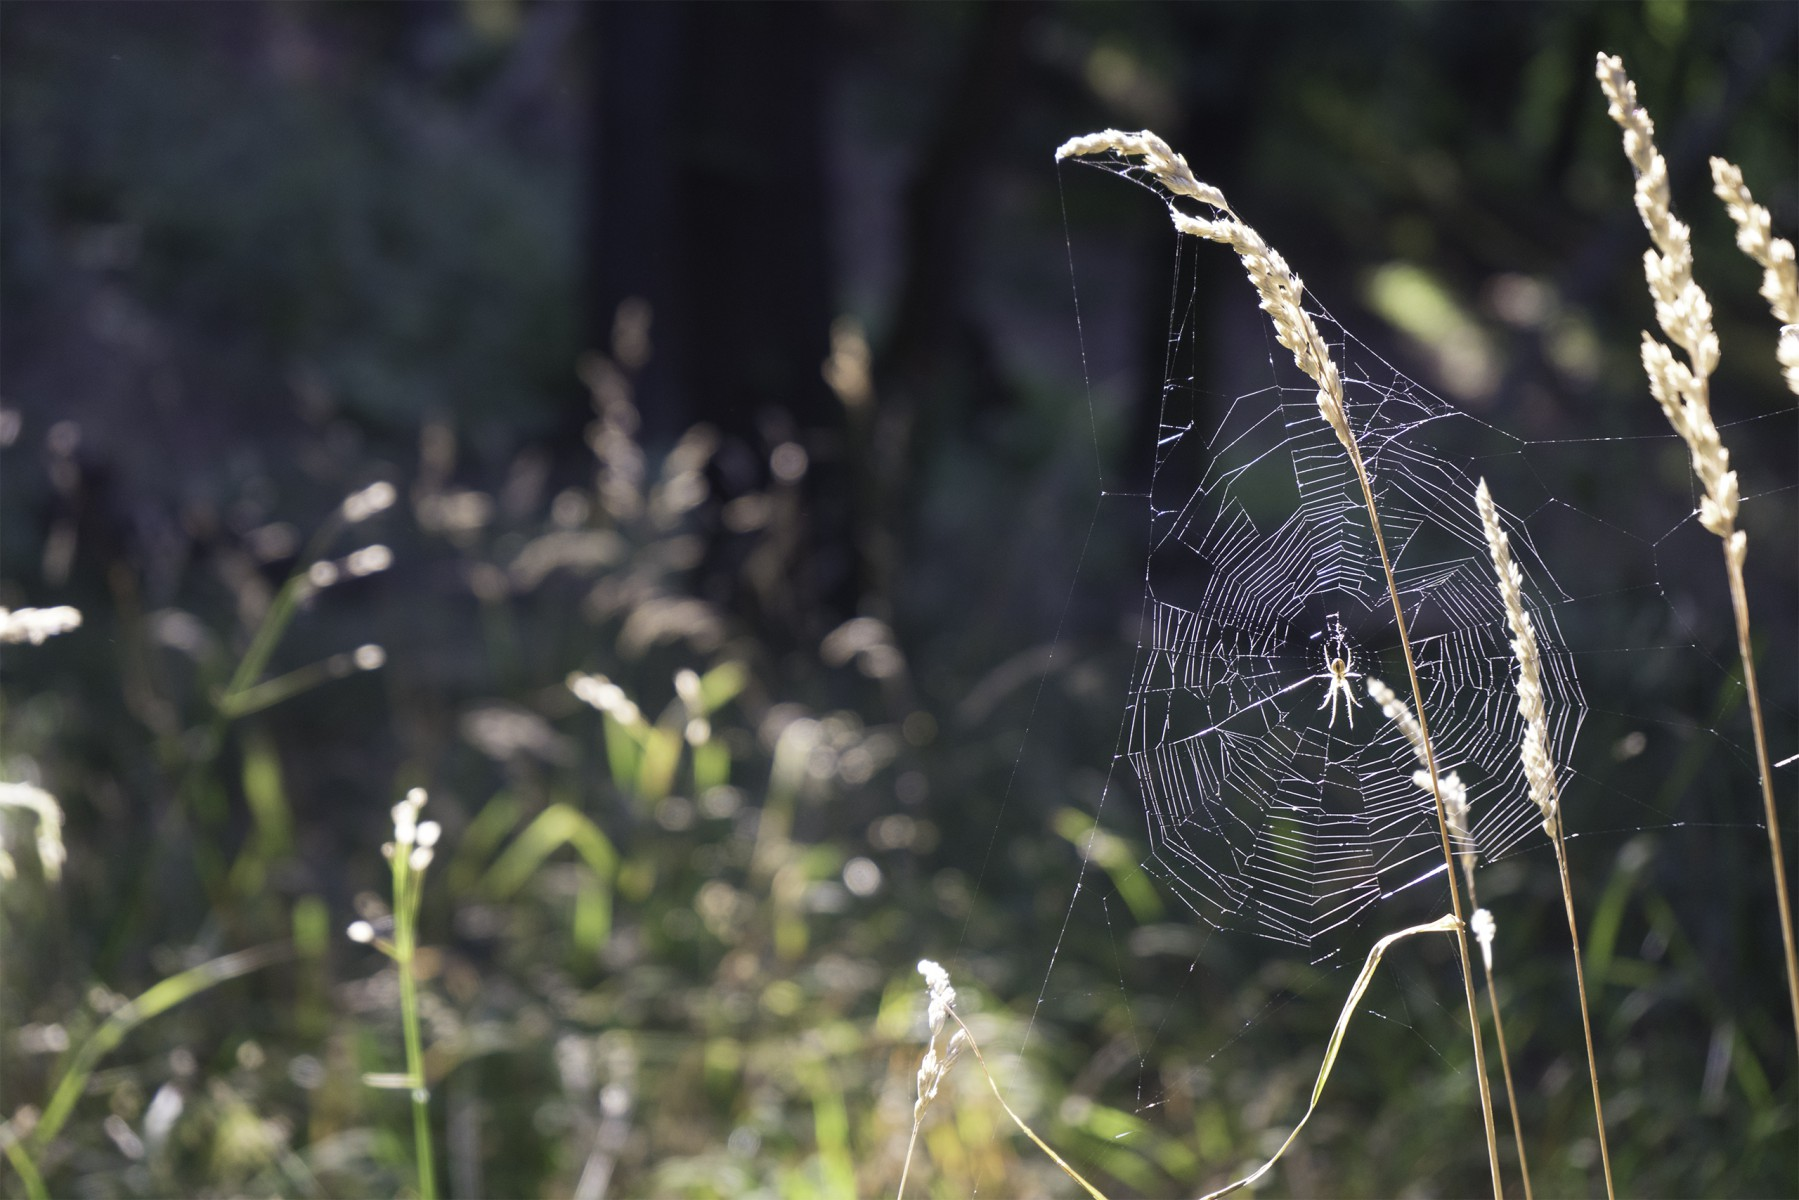 3D Photo Tall grass at forest with a spider